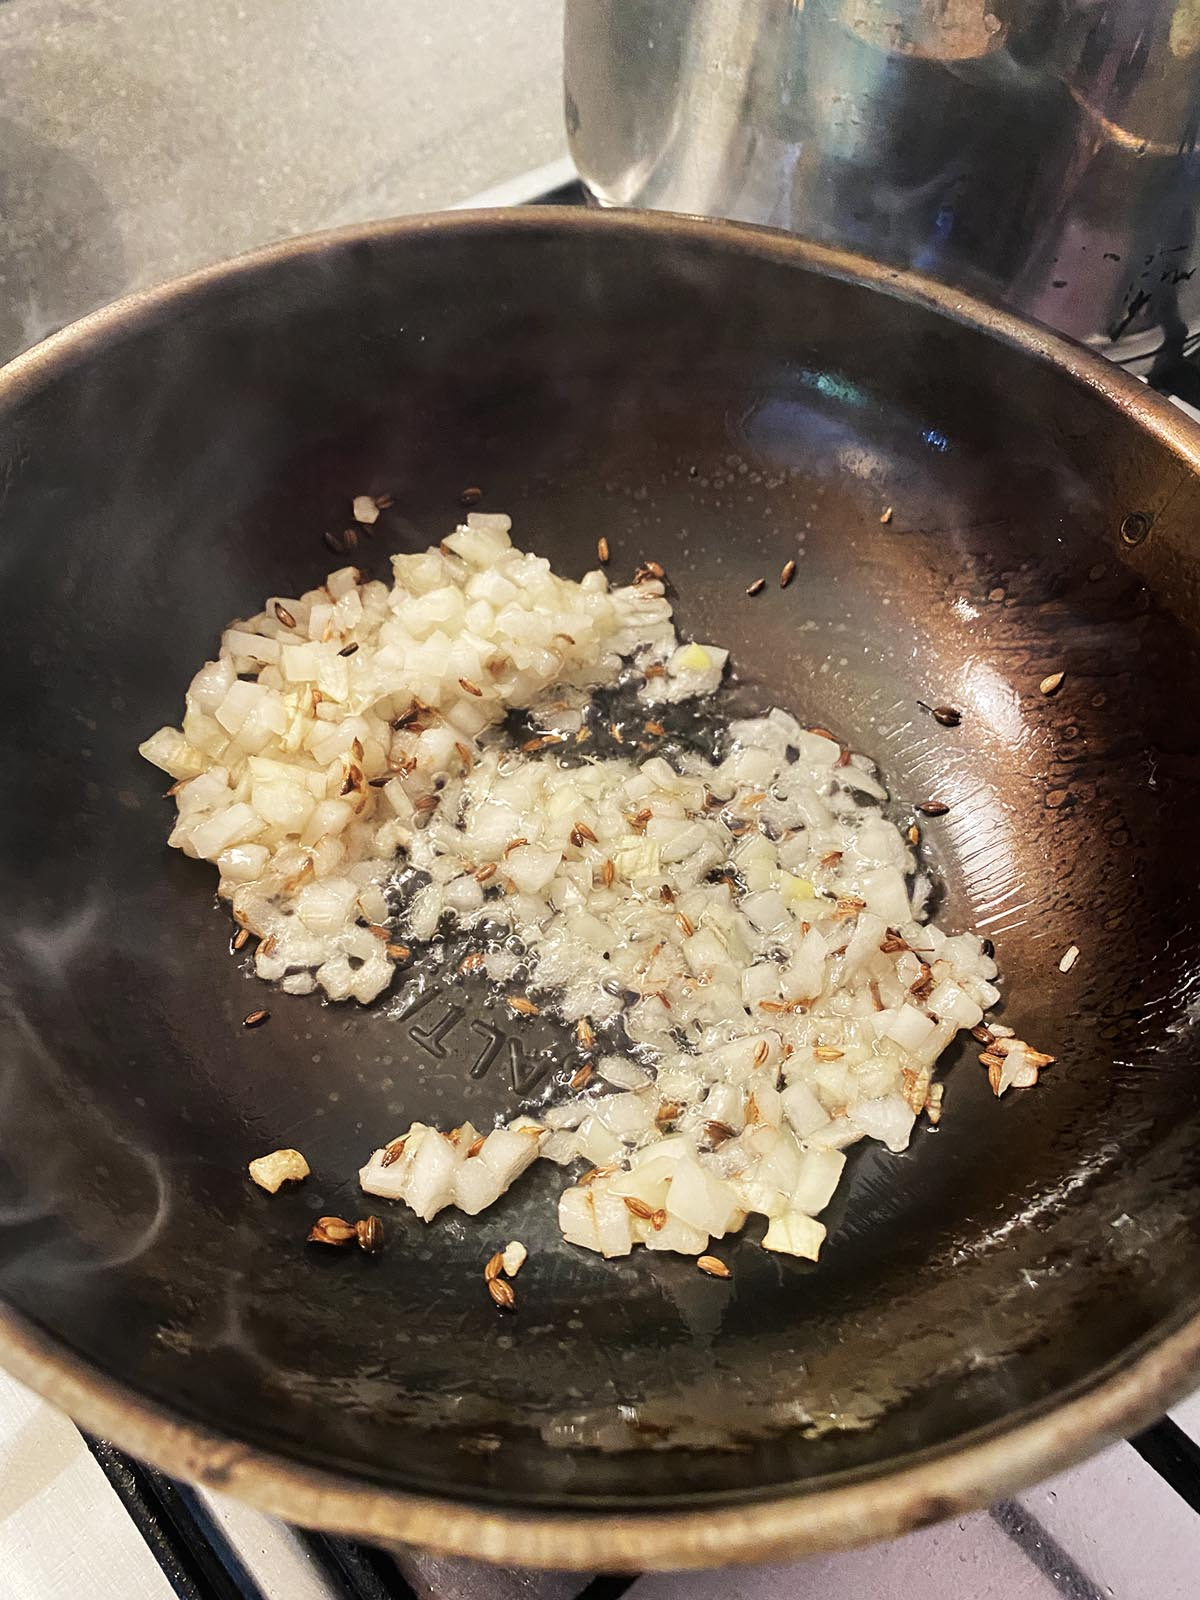 Stirring onions into the pan